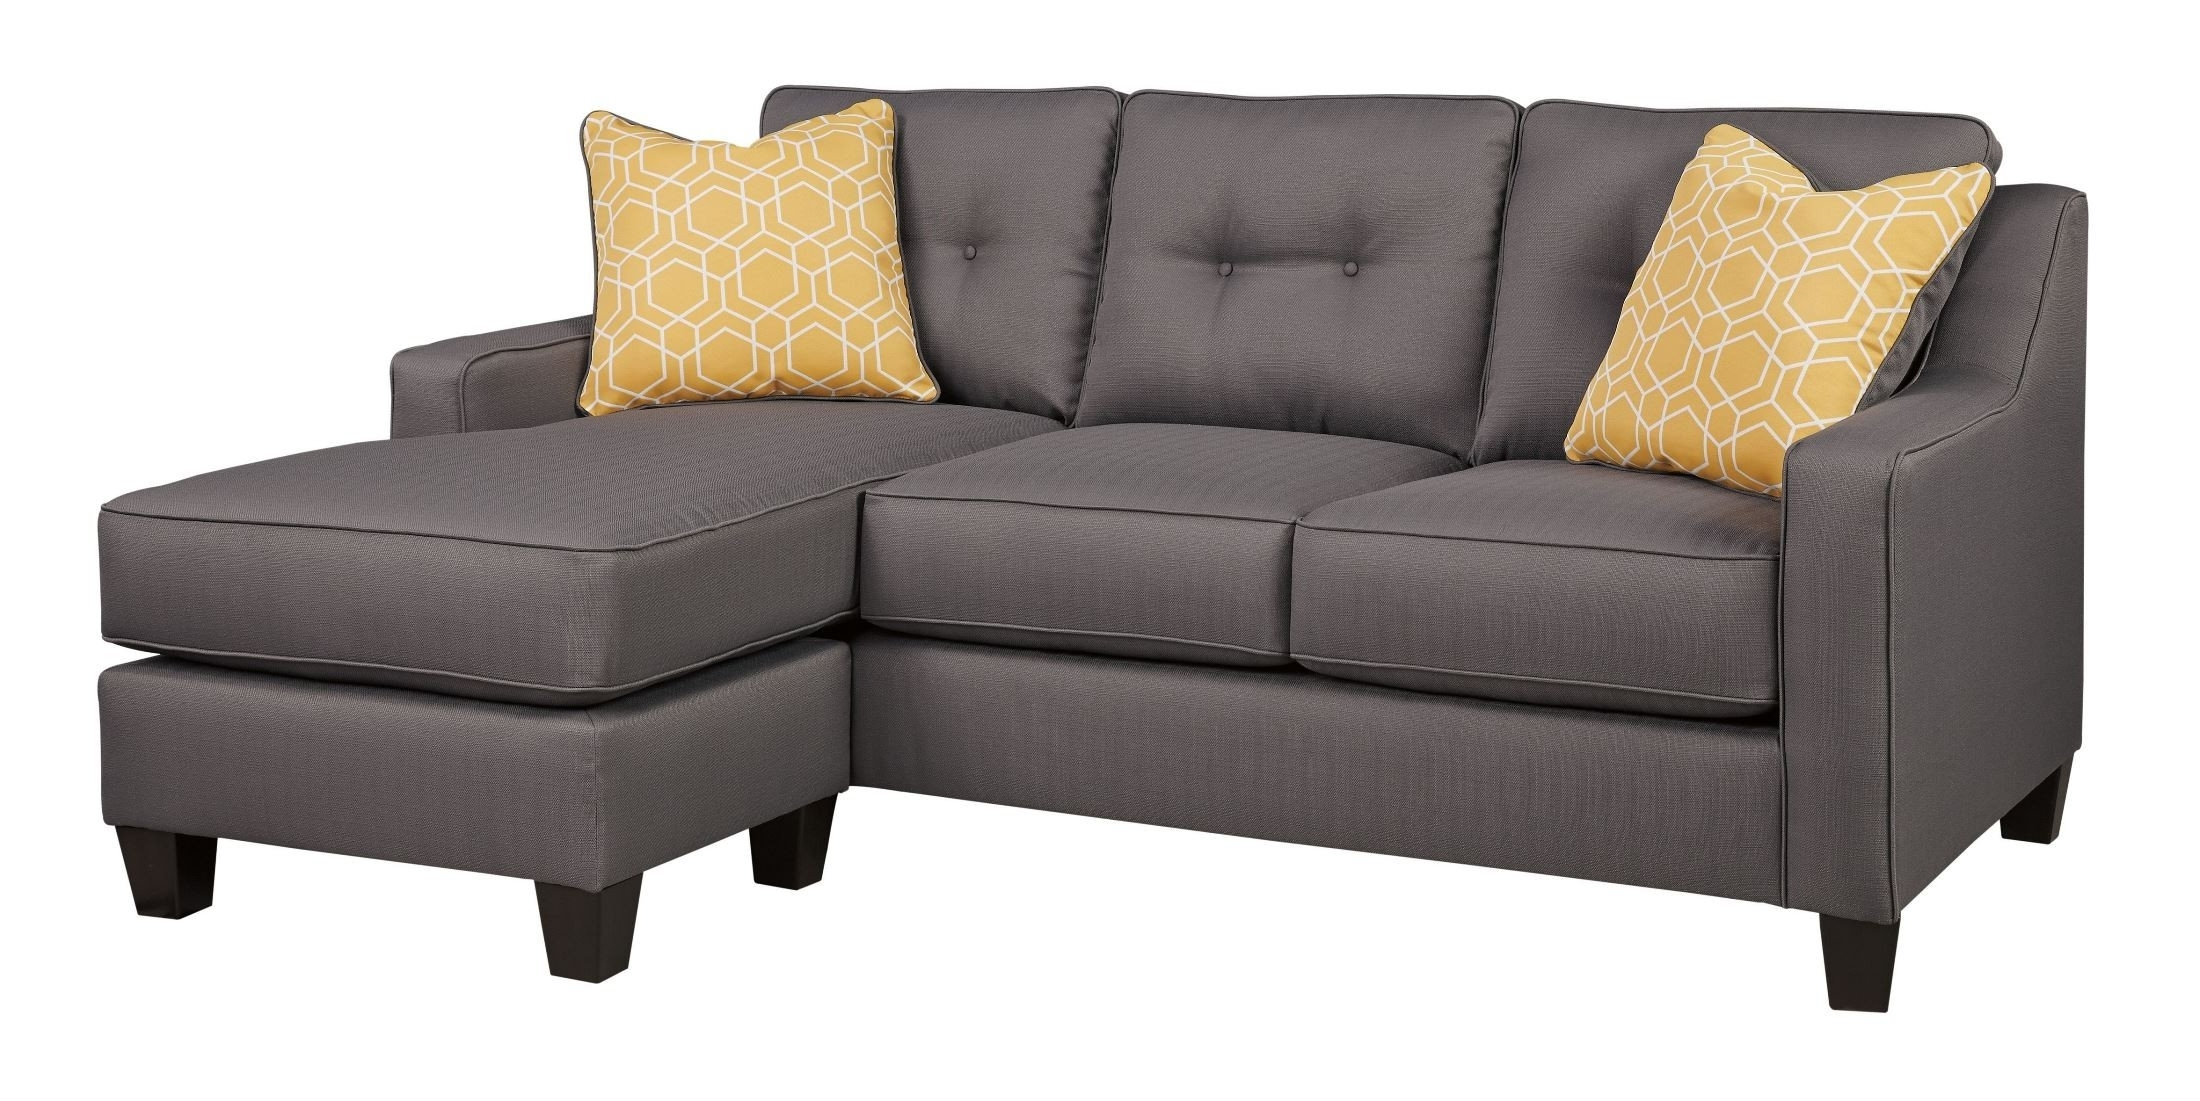 Gray Sofa With Chaise Regarding Favorite Aldie Nuvella Gray Sofa Chaise From Ashley (View 2 of 15)